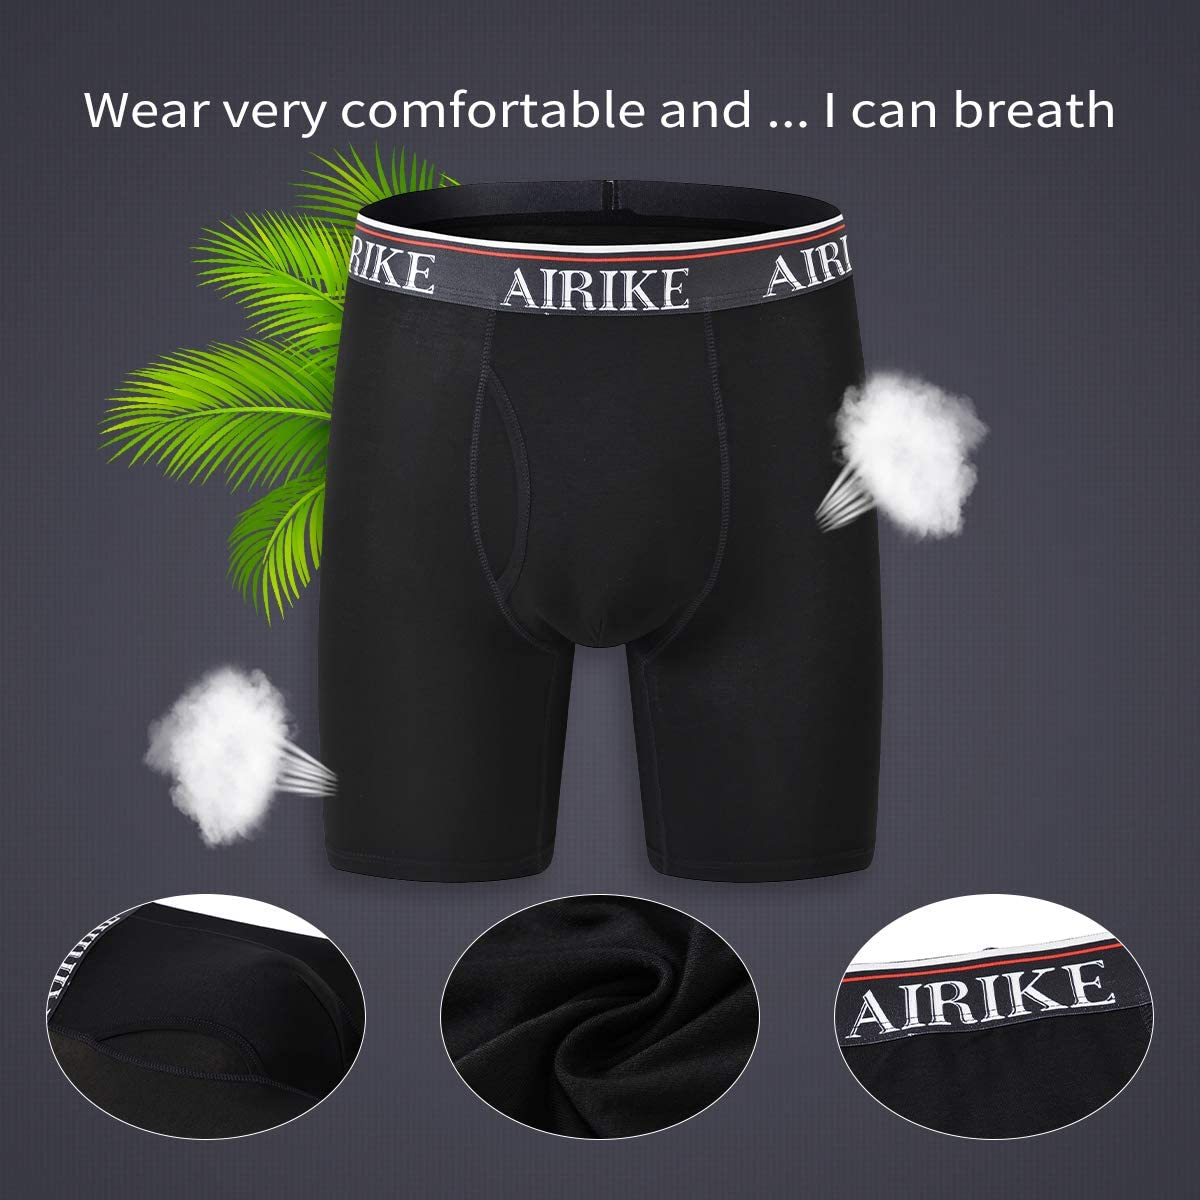 AIRIKE Boxer Briefs Men Pack Ultra Long Leg Soft Bamboo Black Underwear Big Size and Tall Underpants for Men